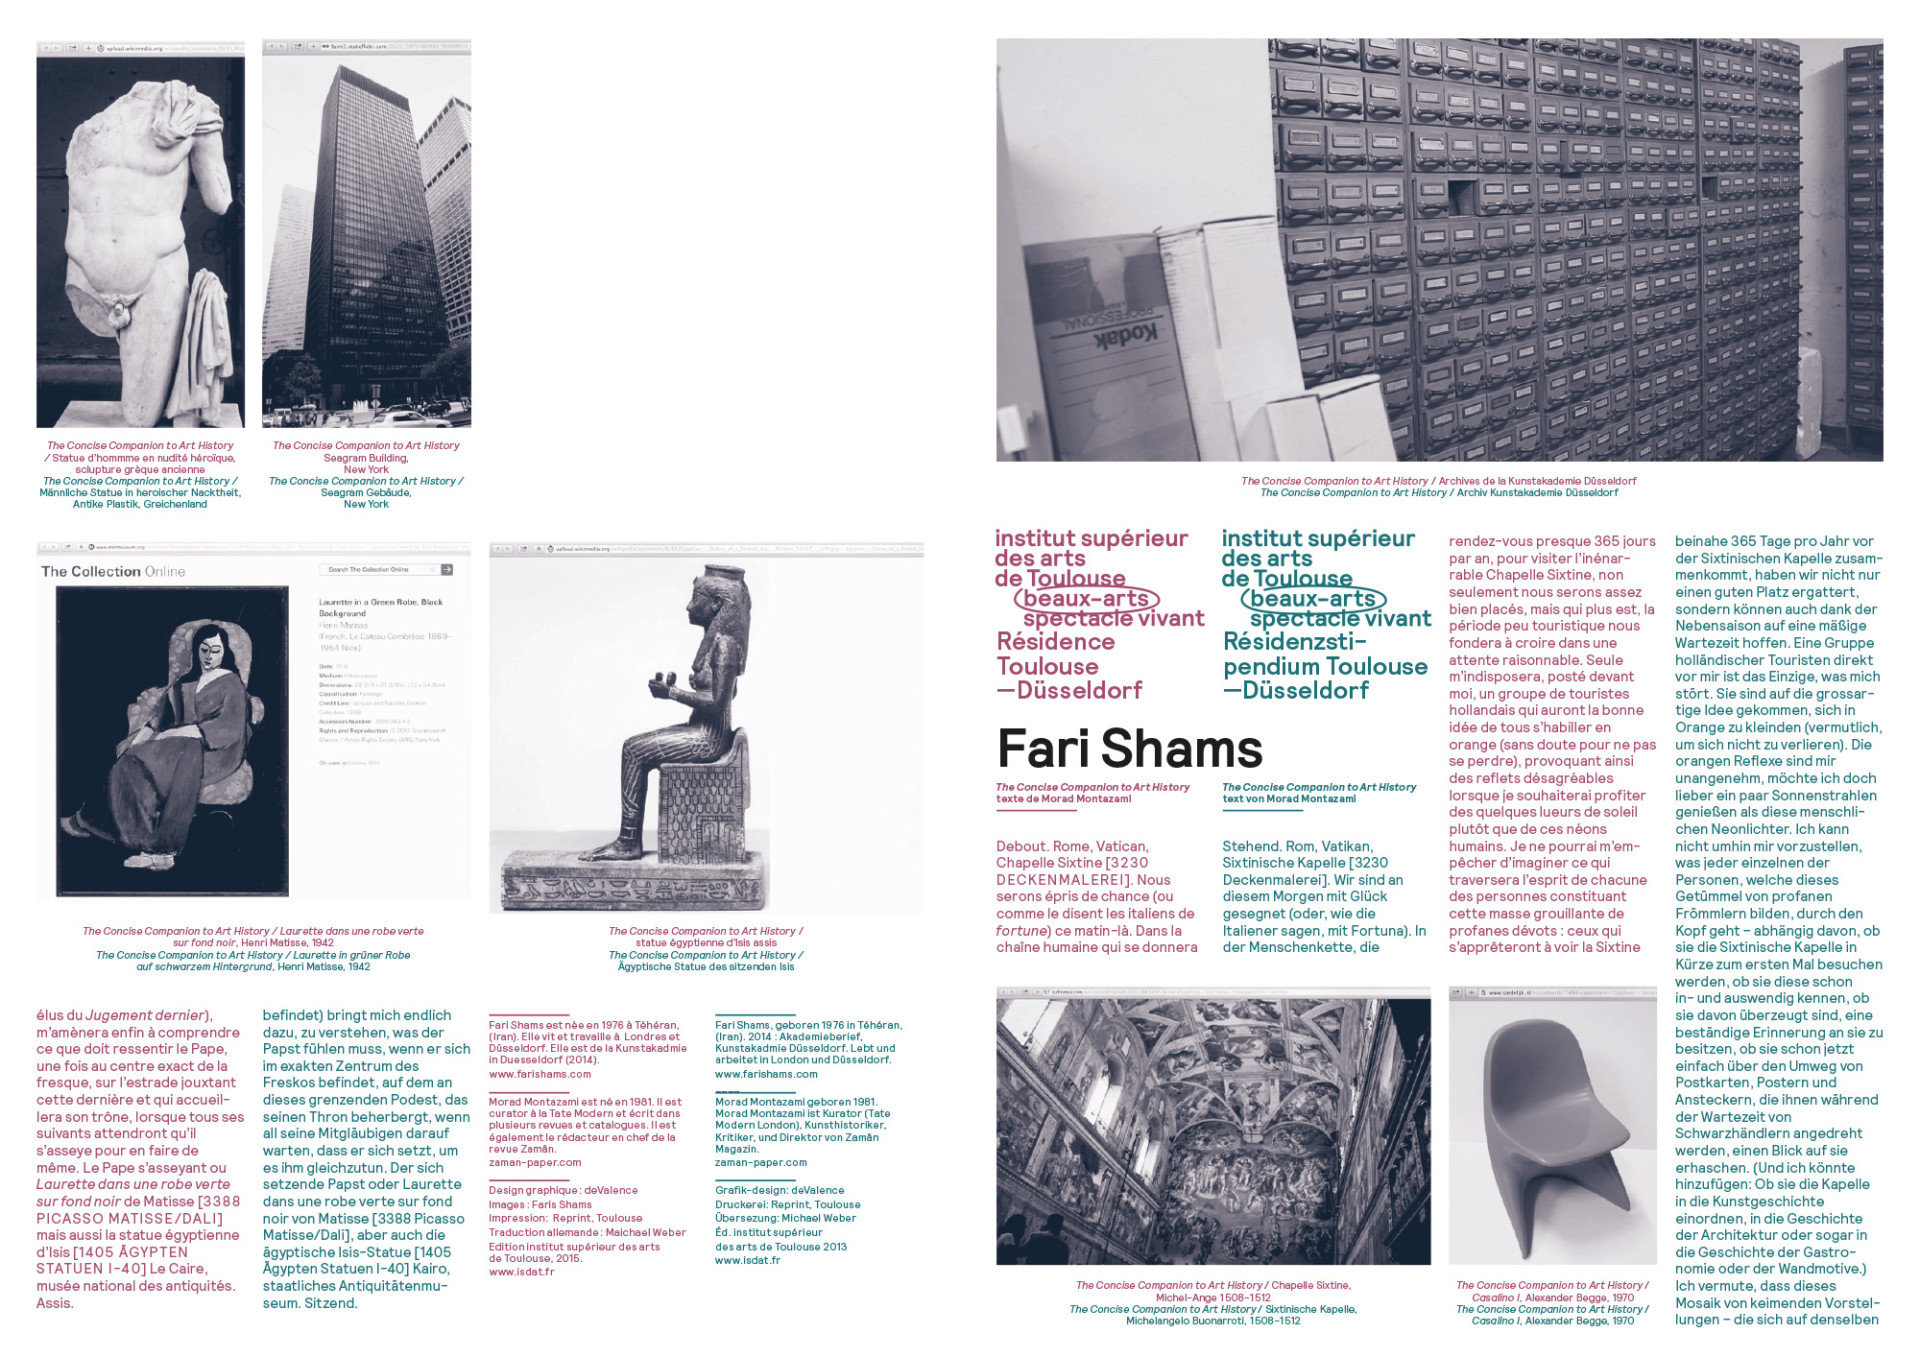 FARI SHAMS The Concise Companion to Art History arranged by Ingo Müller and Gerd Schneider